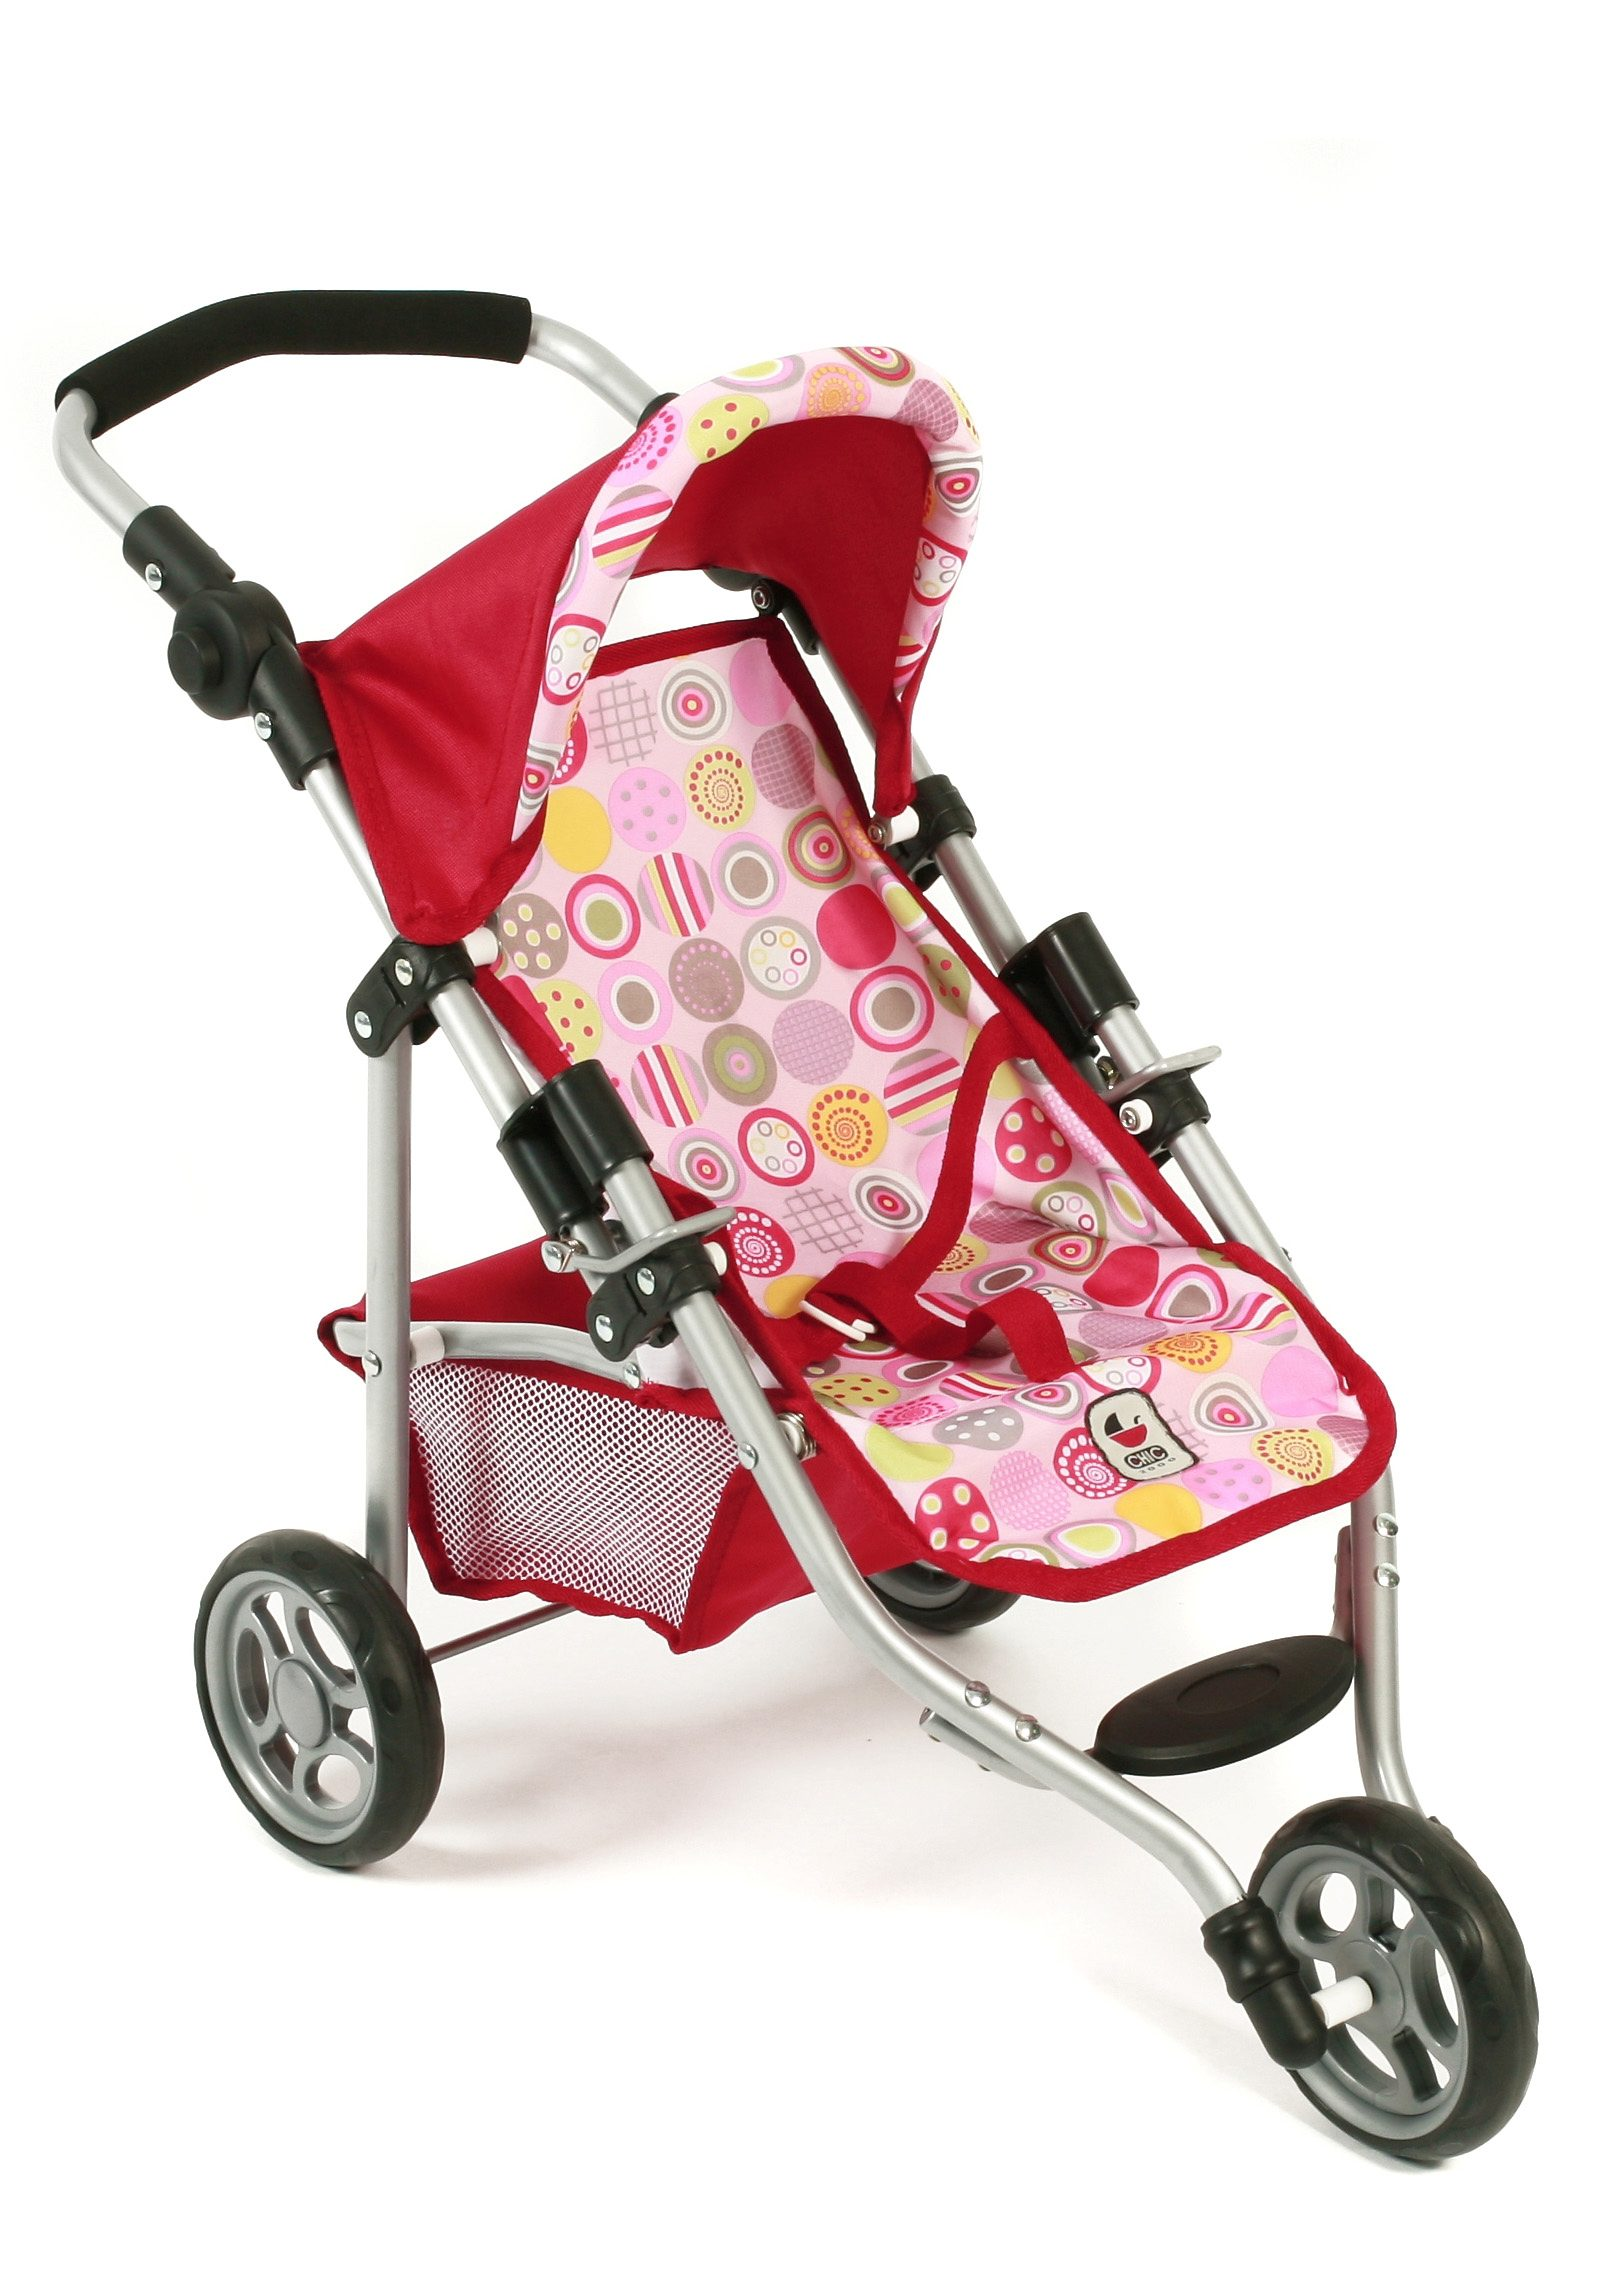 CHIC2000 Puppen-Jogging-Buggy, »Lola, Ruby Red«